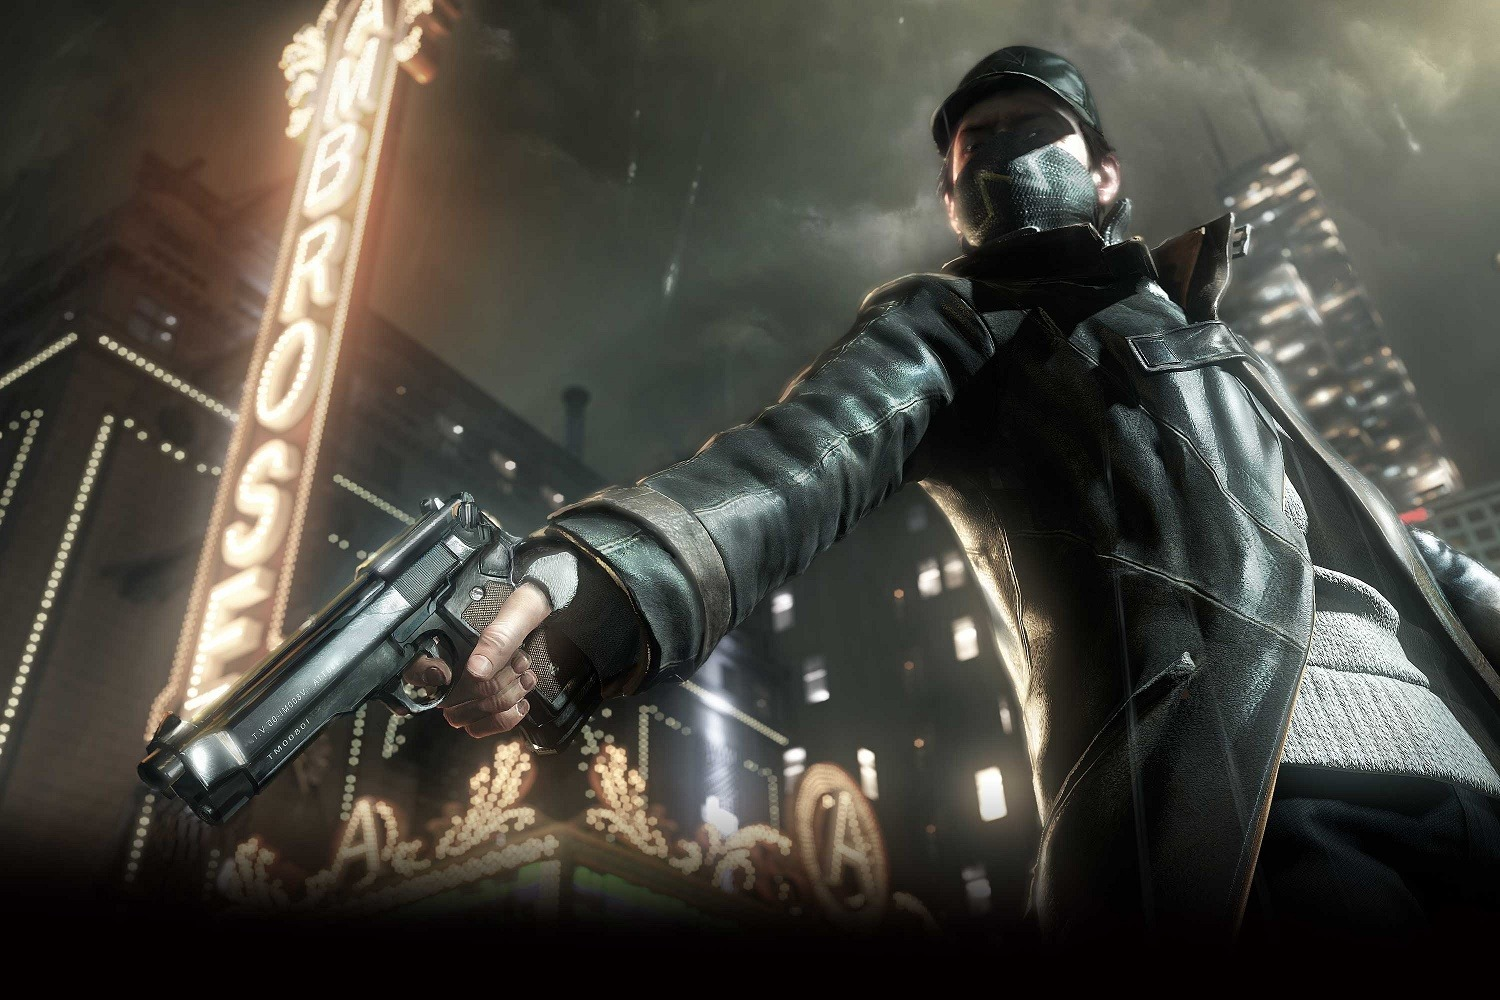 Watch Dogs and the Stanley Parable are currently free on the Epic Games Store